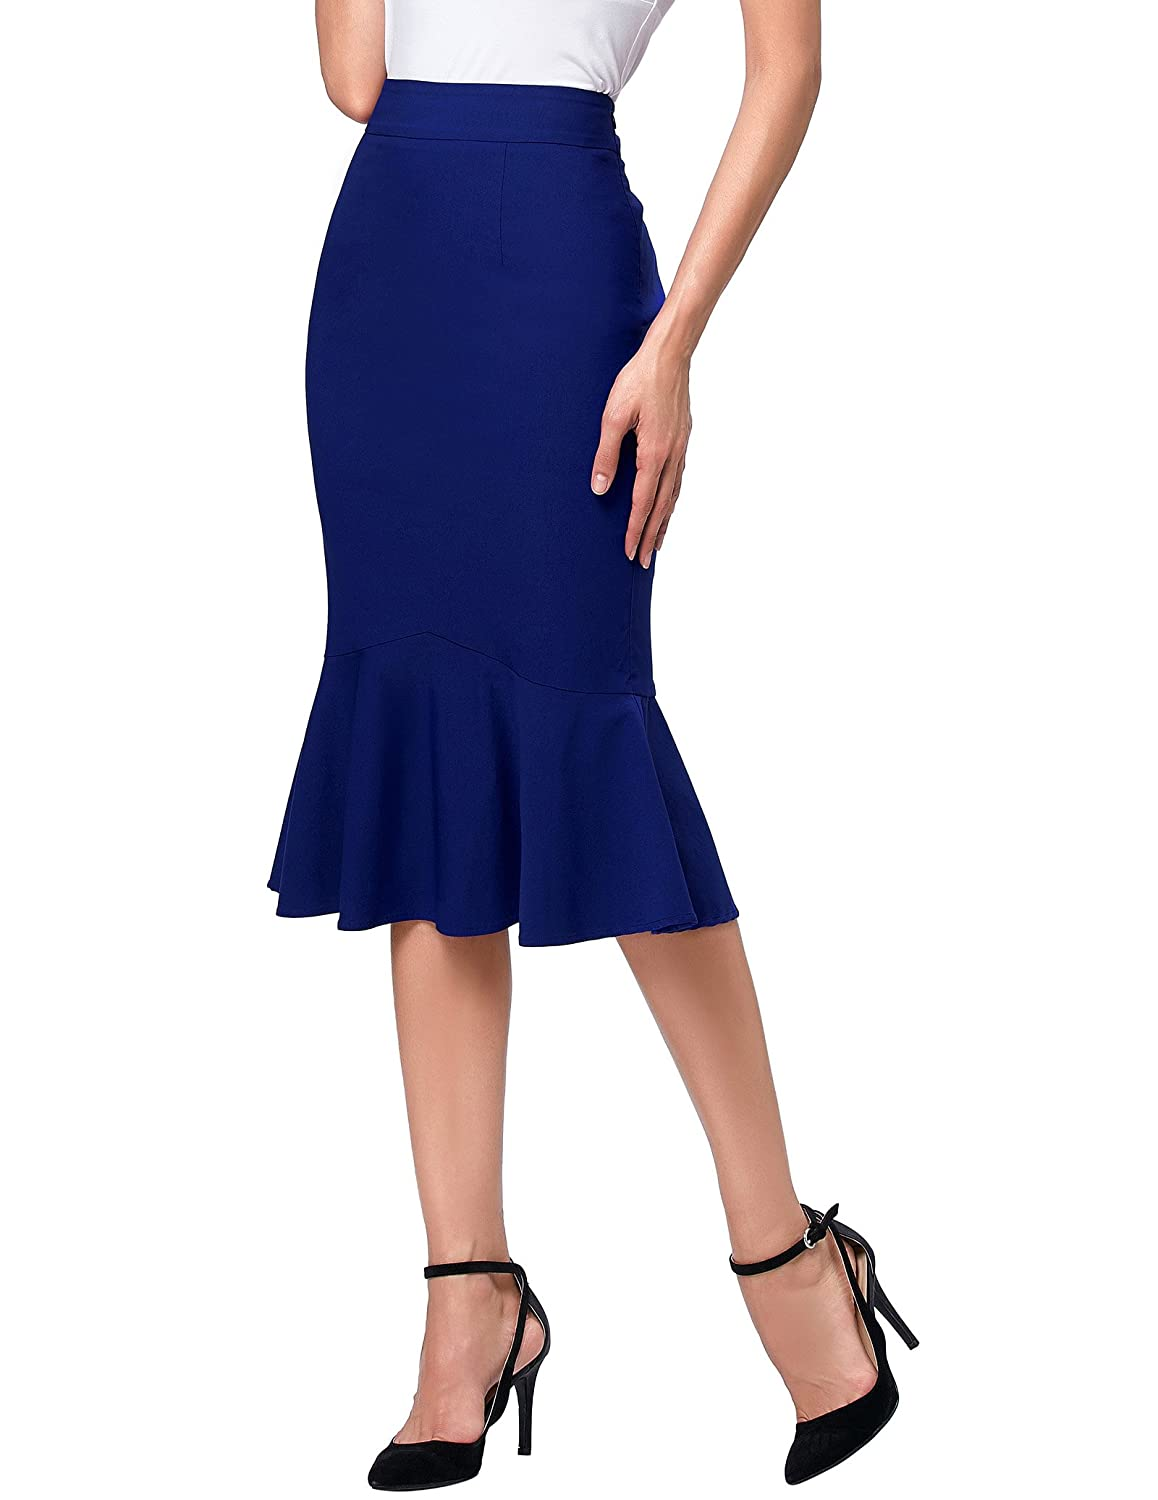 Agent Peggy Carter Costume, Dress, Hats Kate Kasin Womens Wear to Work Stretchy Pencil Skirts $16.79 AT vintagedancer.com